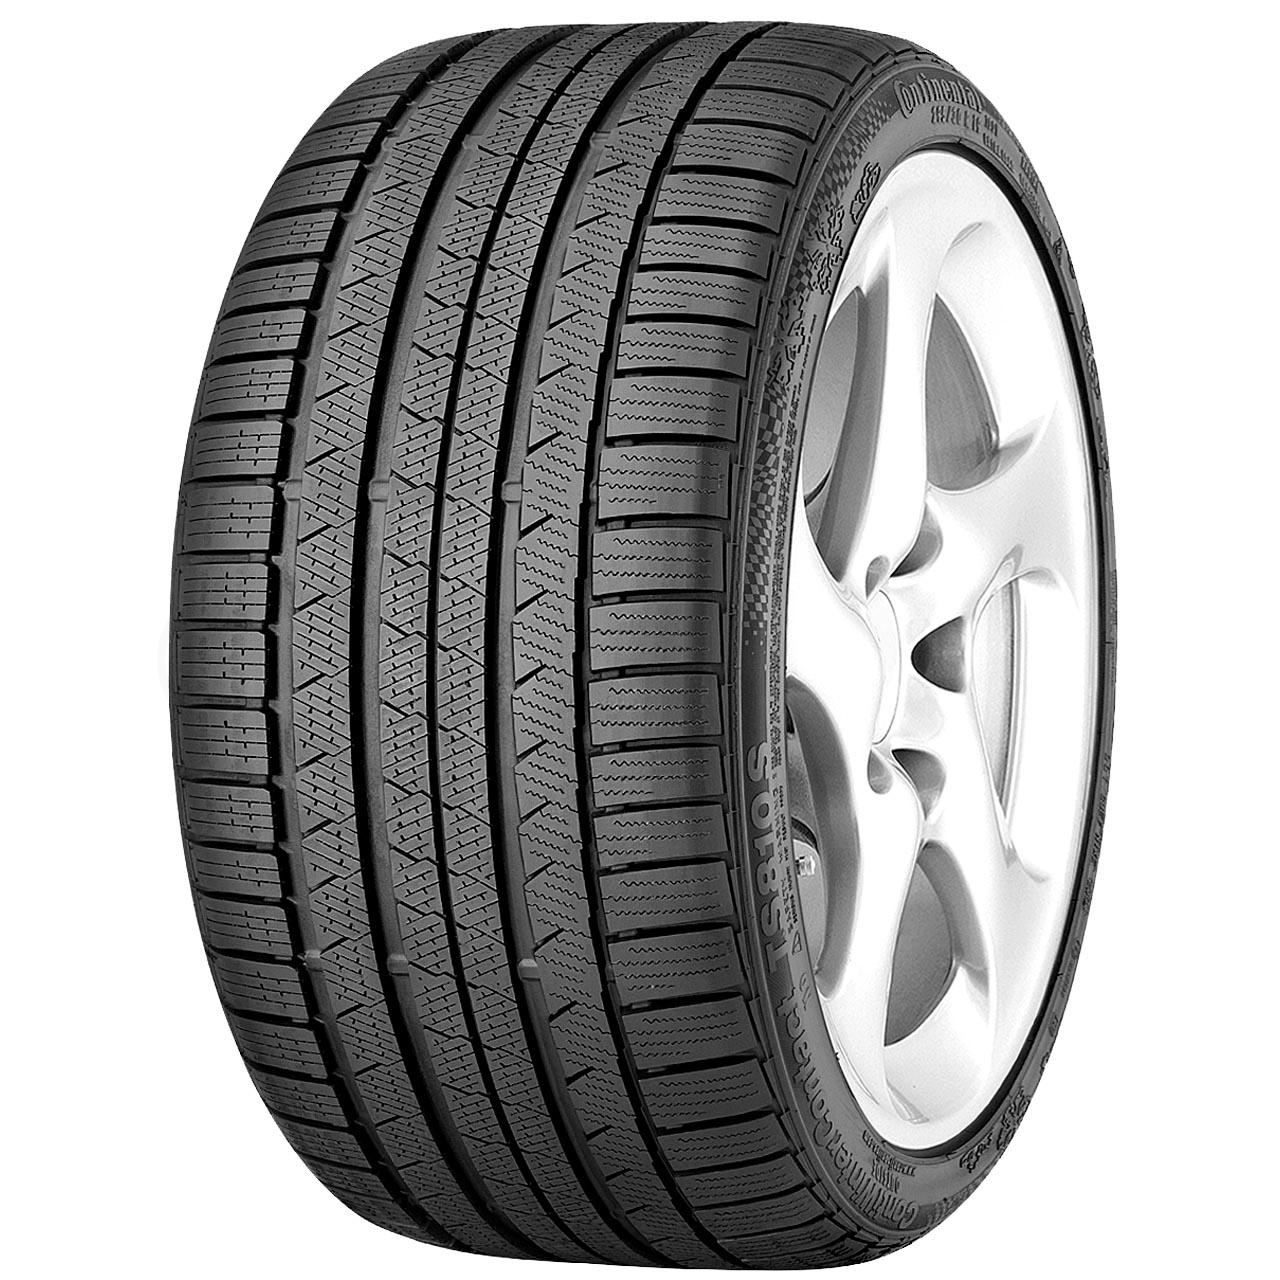 Continental CONTIWINTERCONTACT TS 810 S 225/50R17 94H *